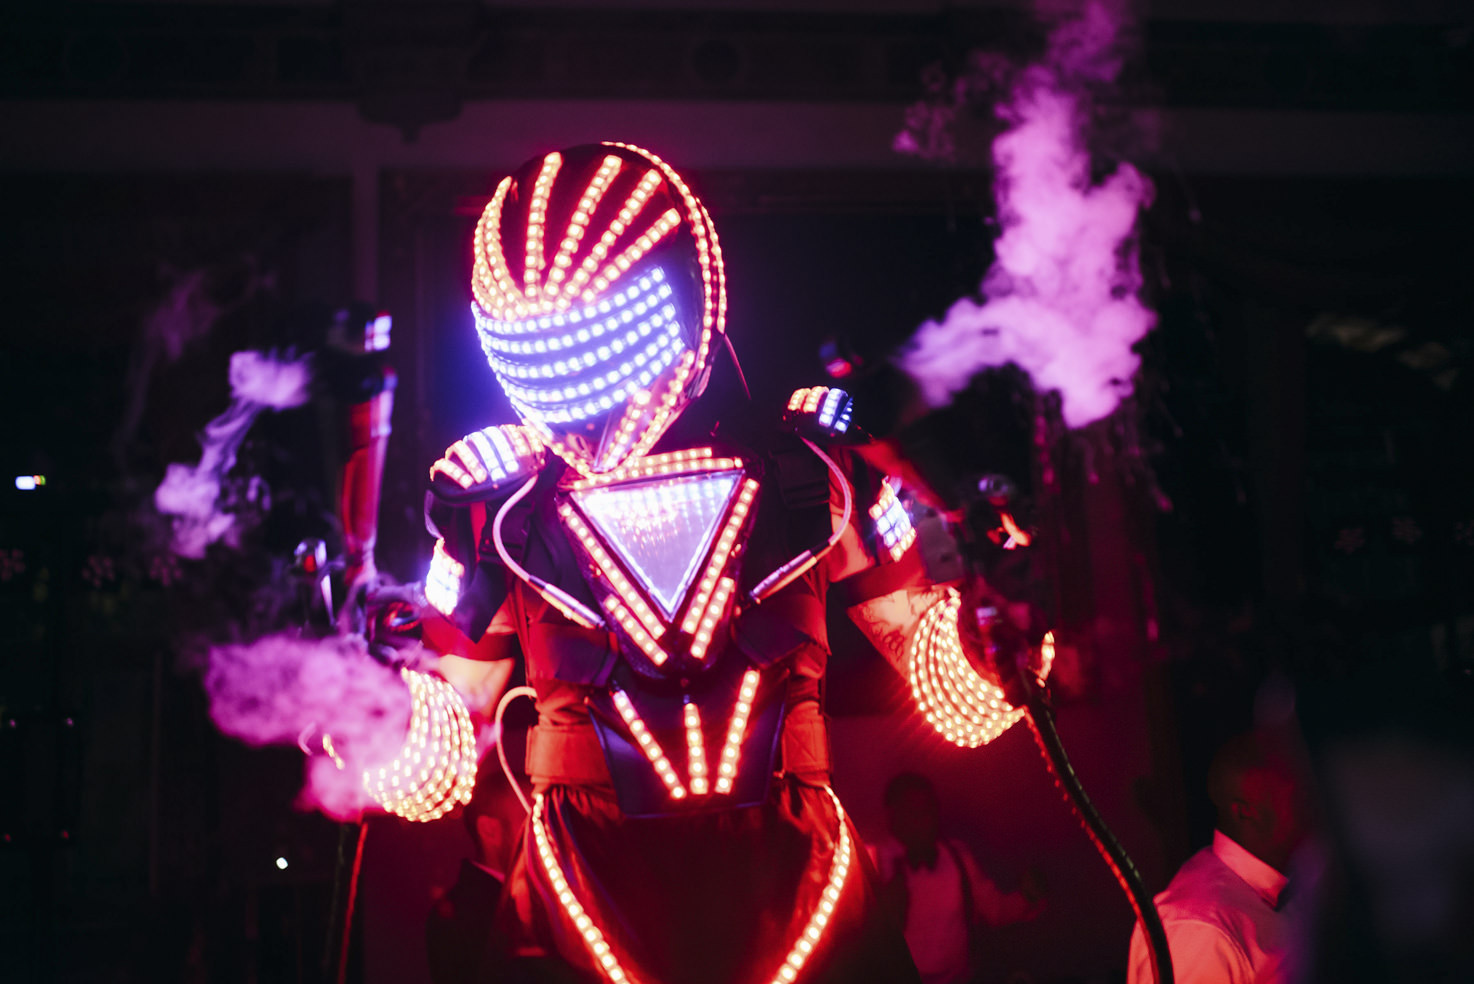 LED robot for wedding party